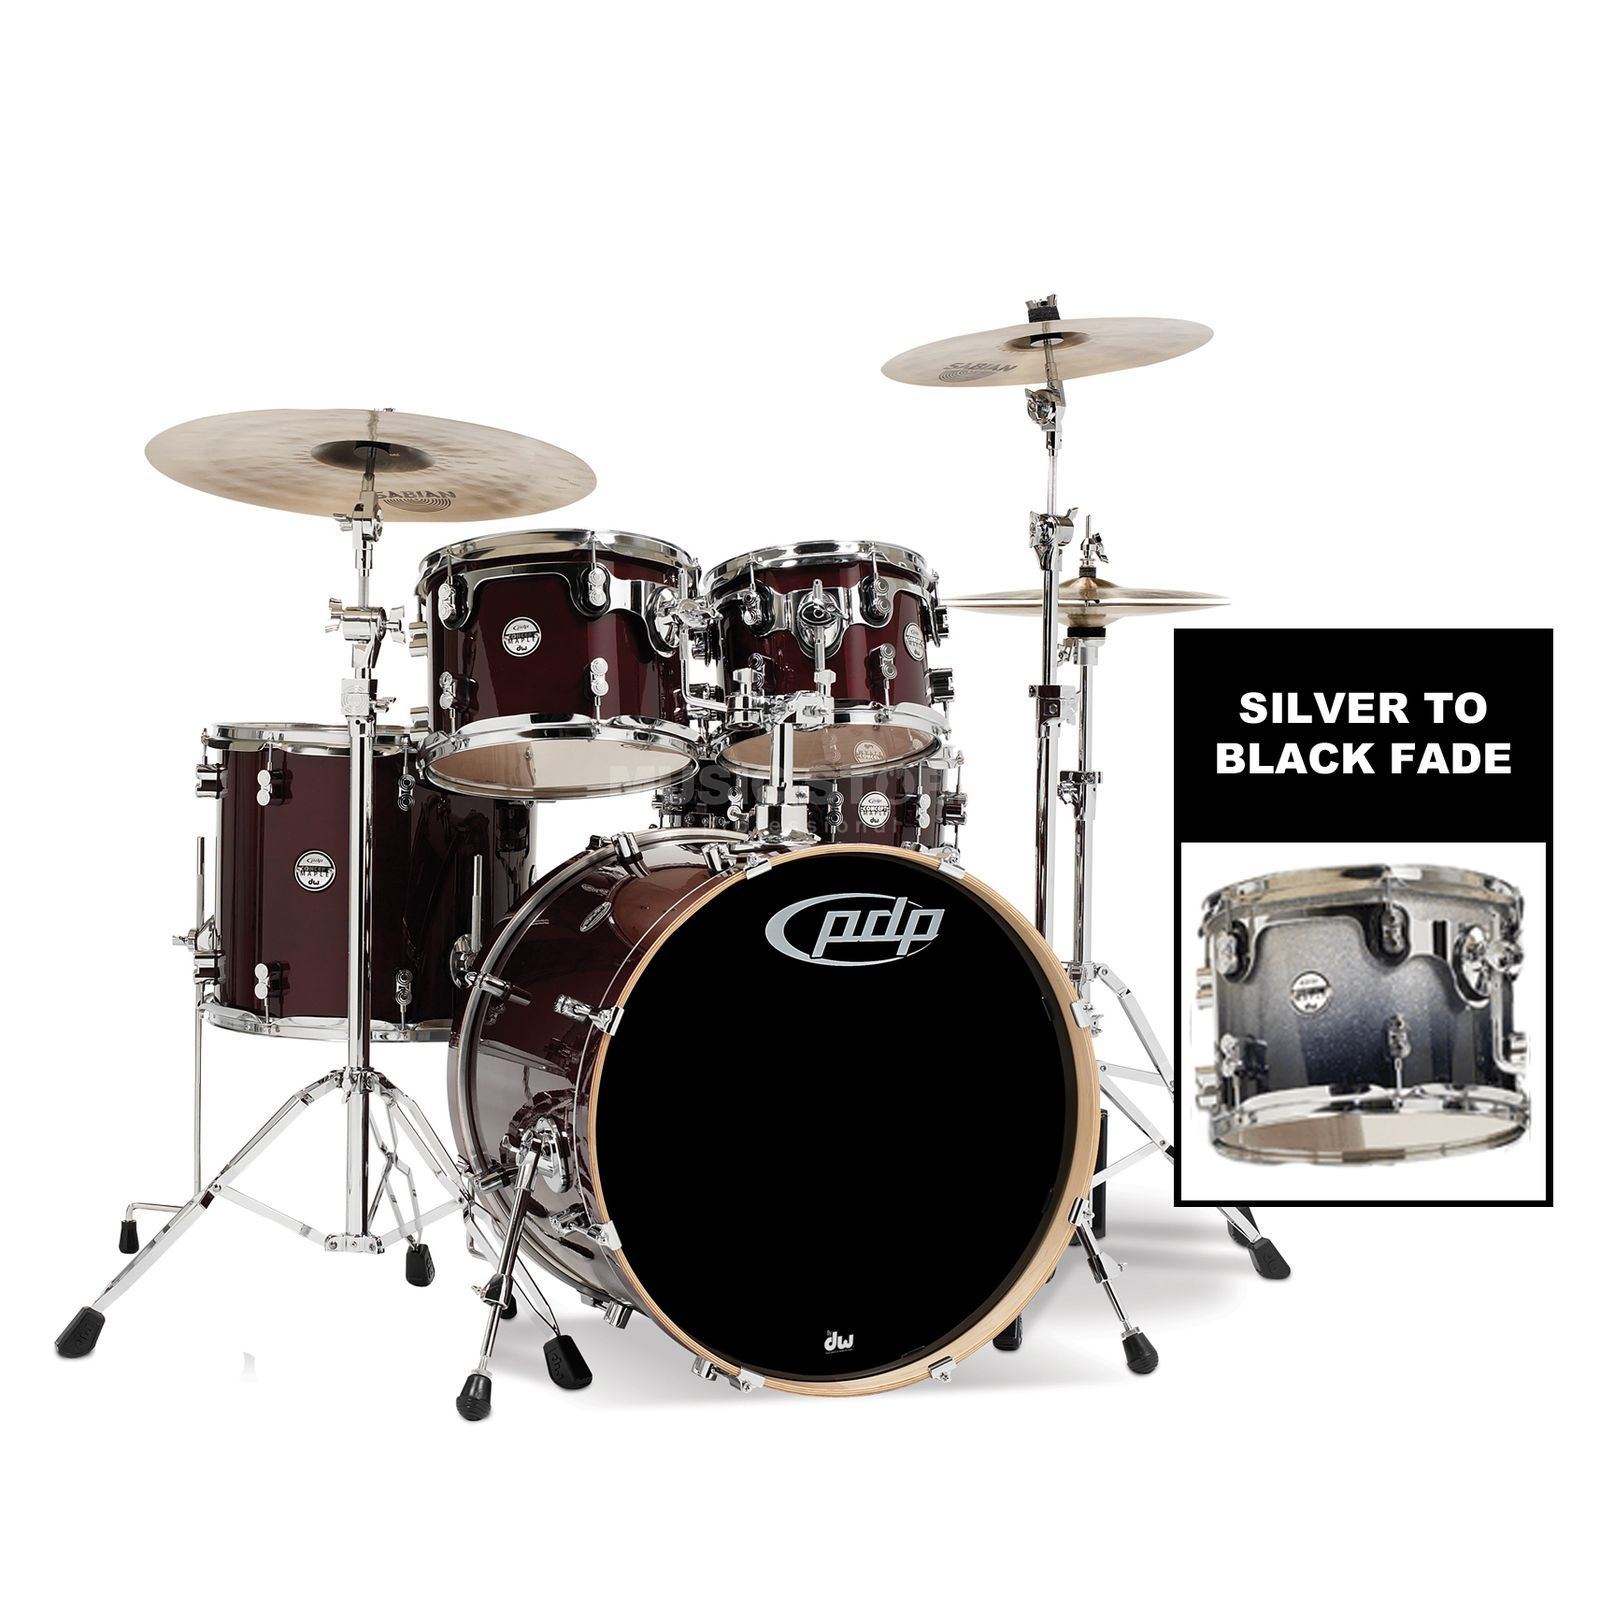 Drum Workshop PDP Concept Maple Studio CM5, Silver to Black Fade Produktbild